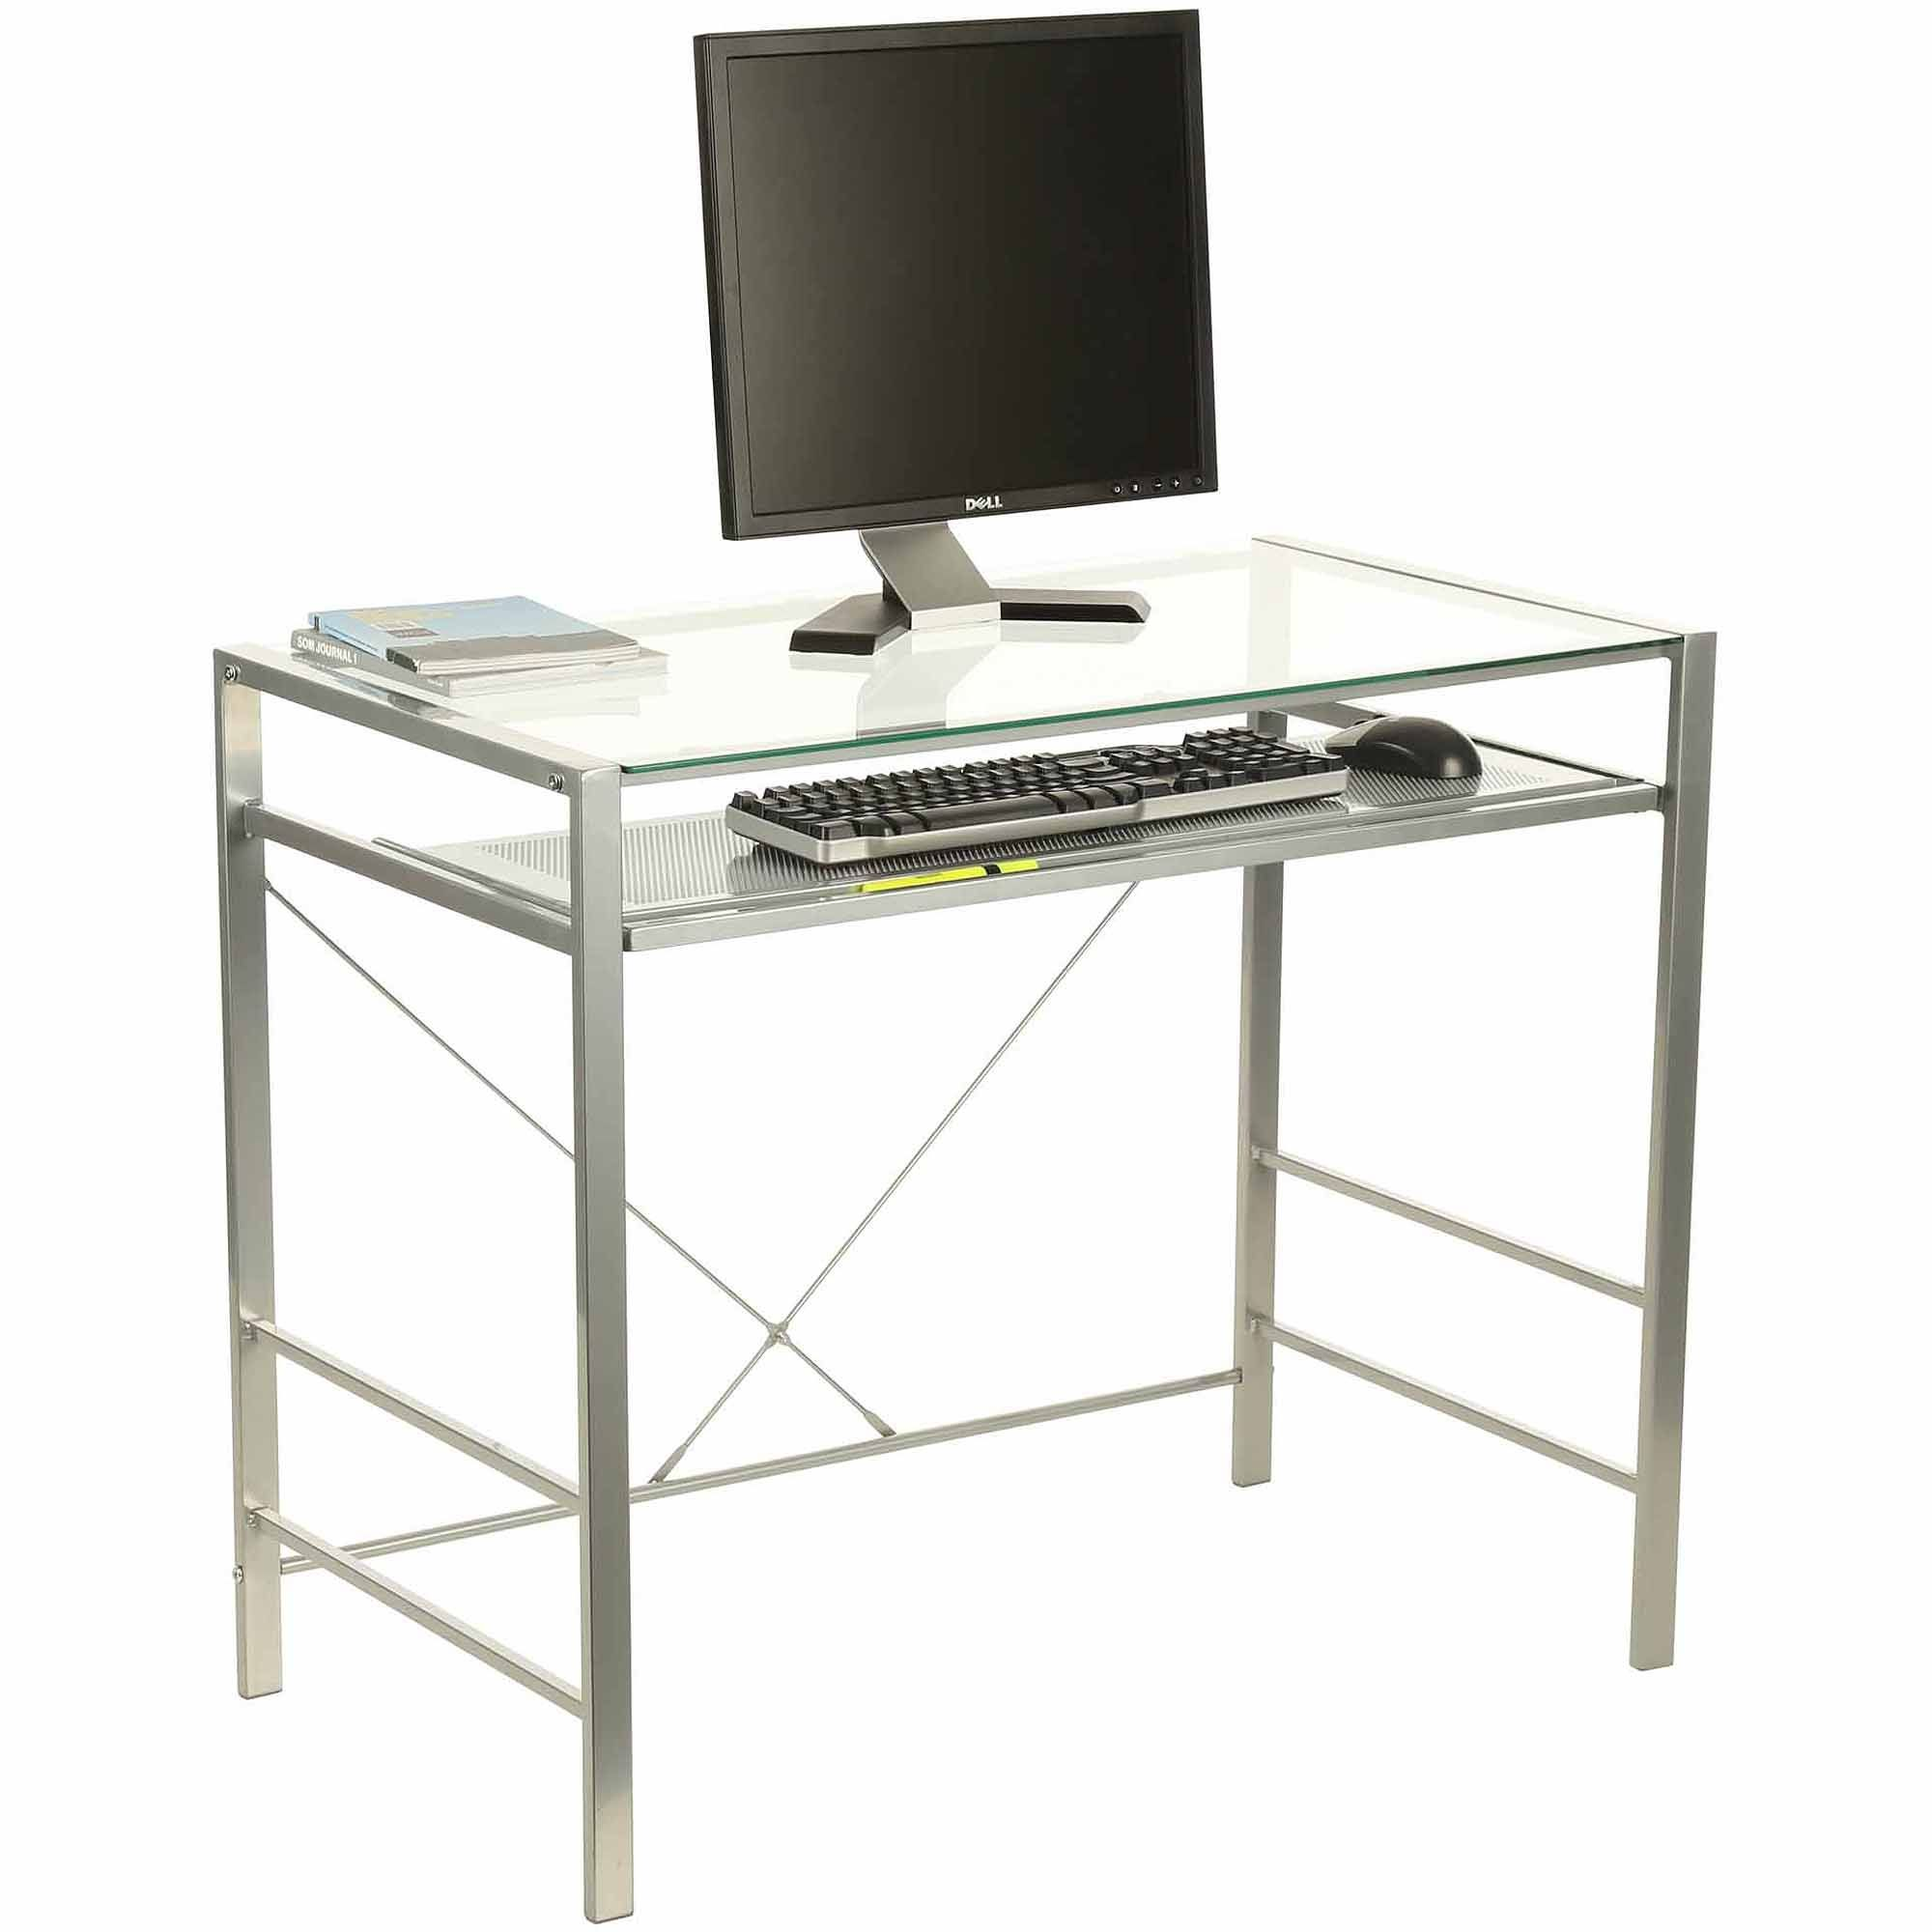 Executive office table with glass top mainstays glass top desk clear  imanage  pinterest